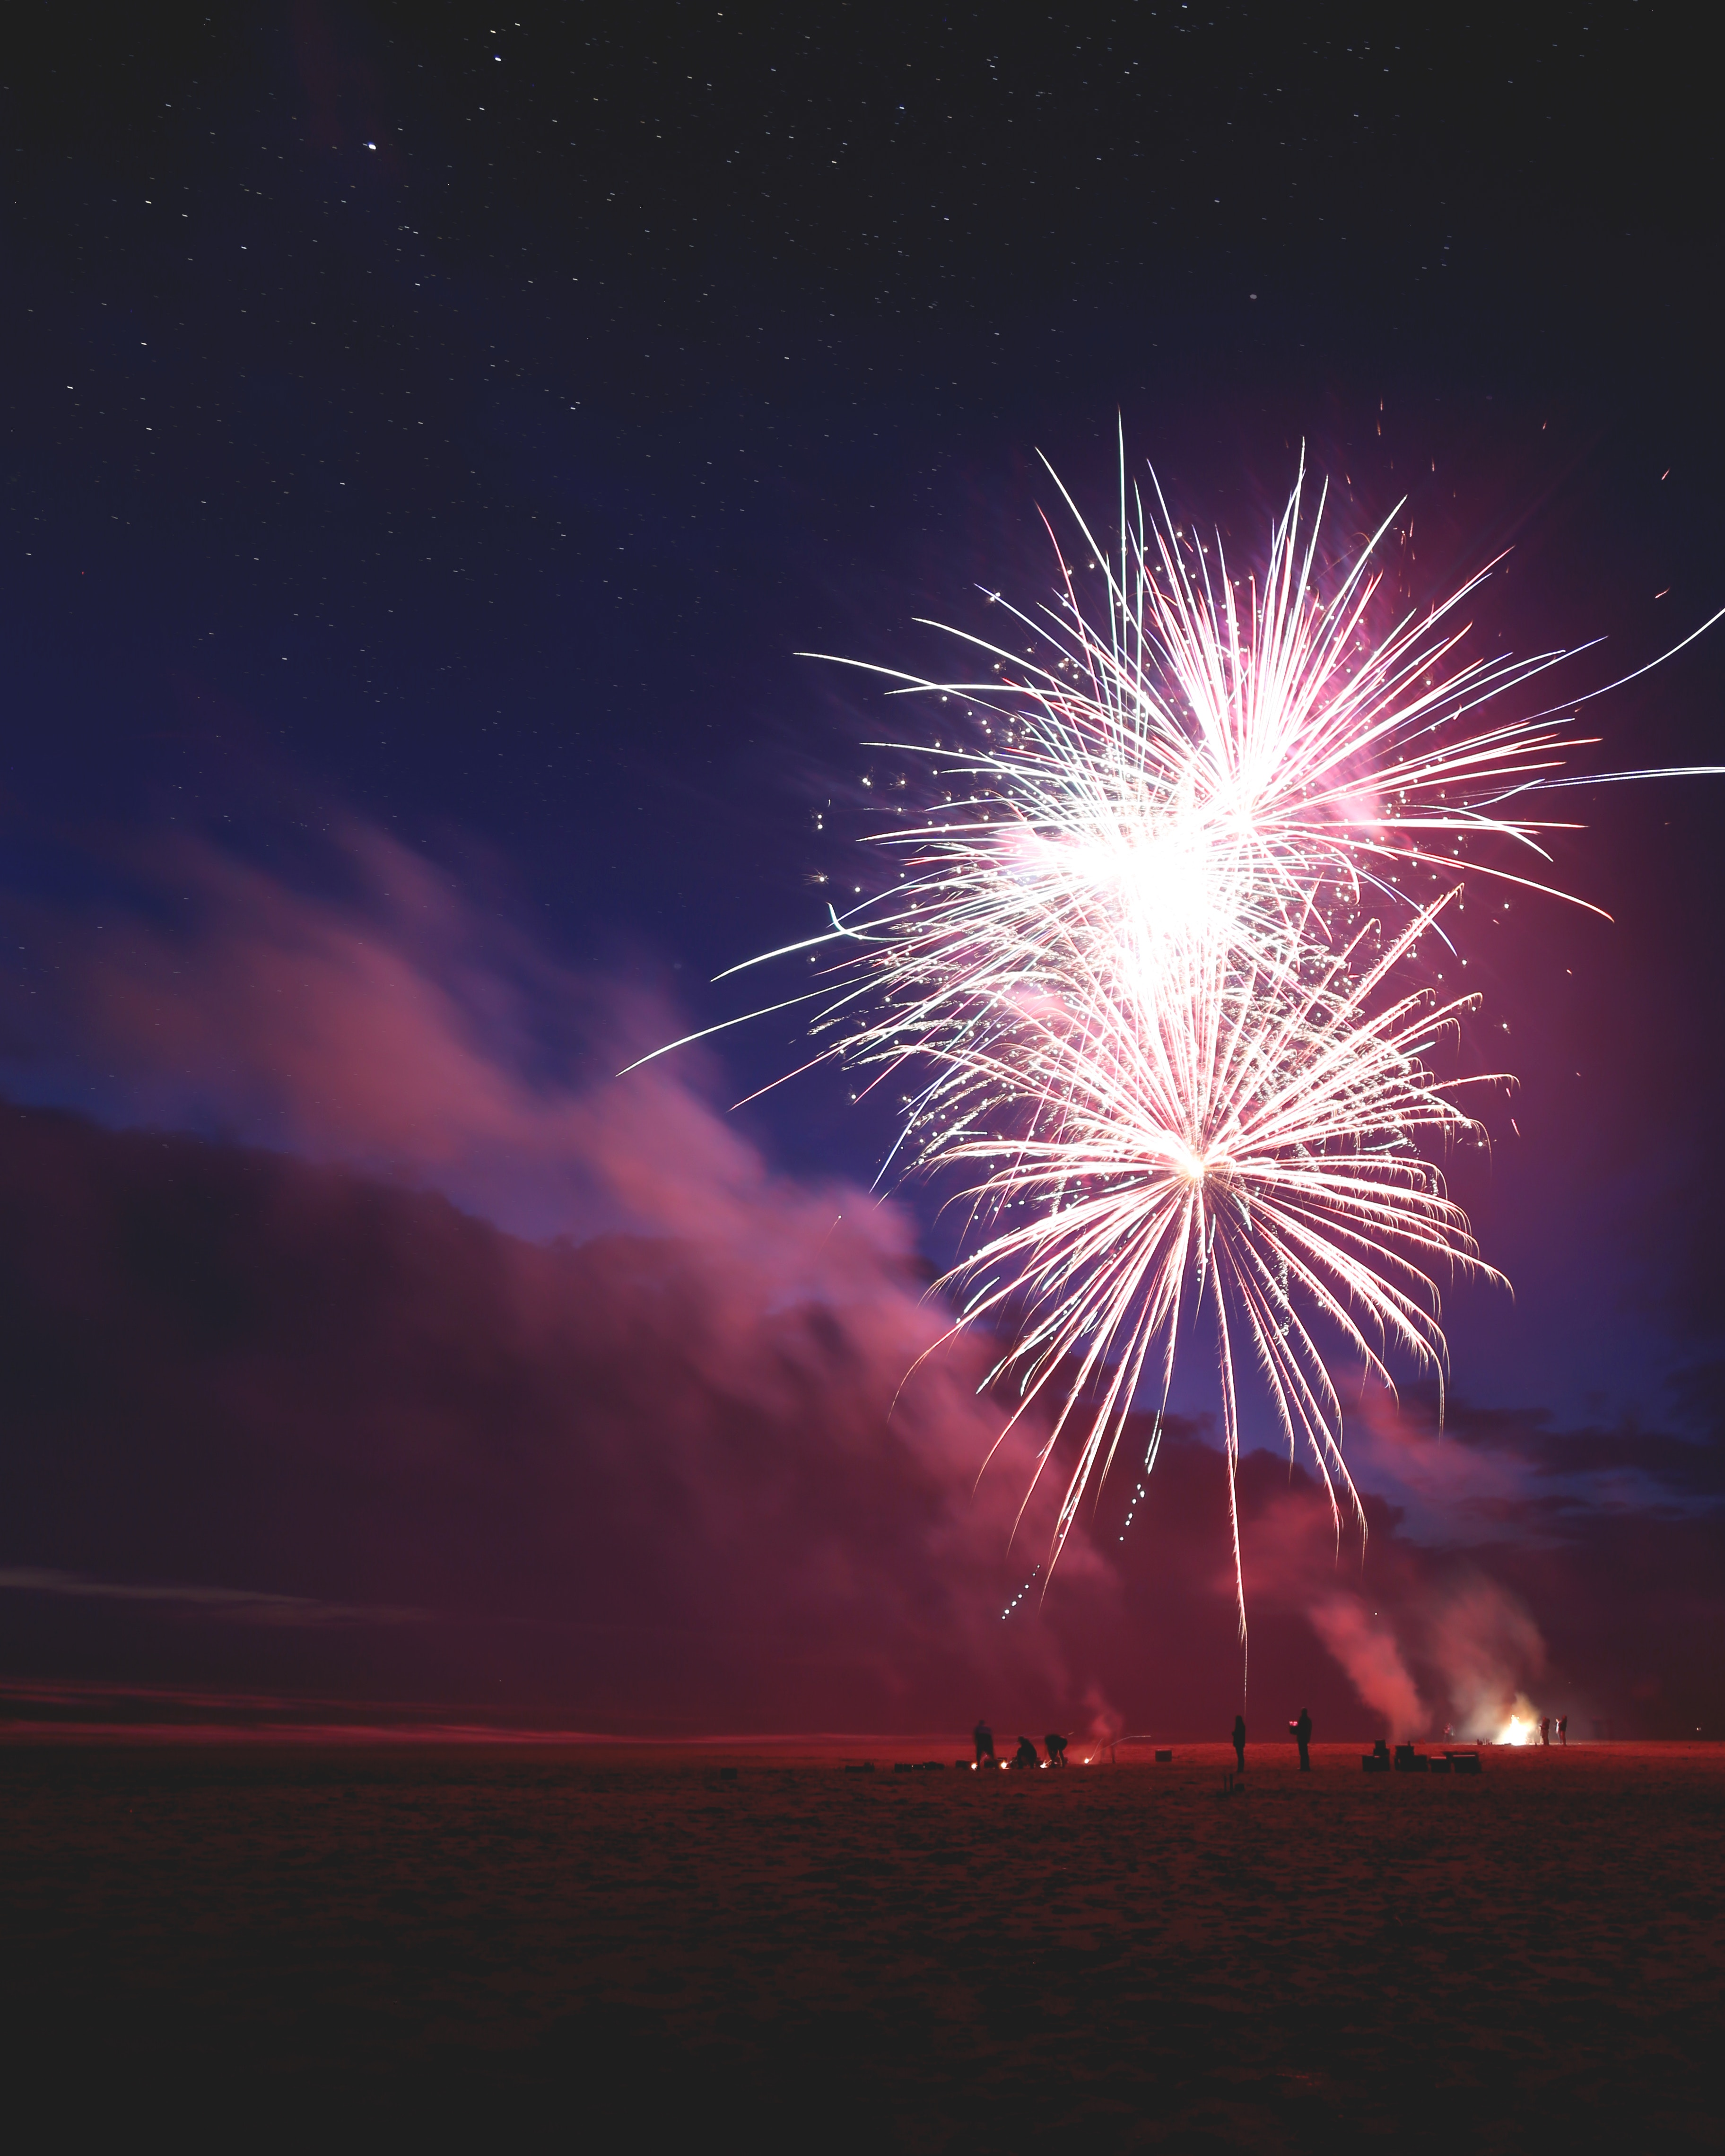 Fireworks in a dark sky with people standing nearby watching. Photo by Jordan Steranka on Unsplash